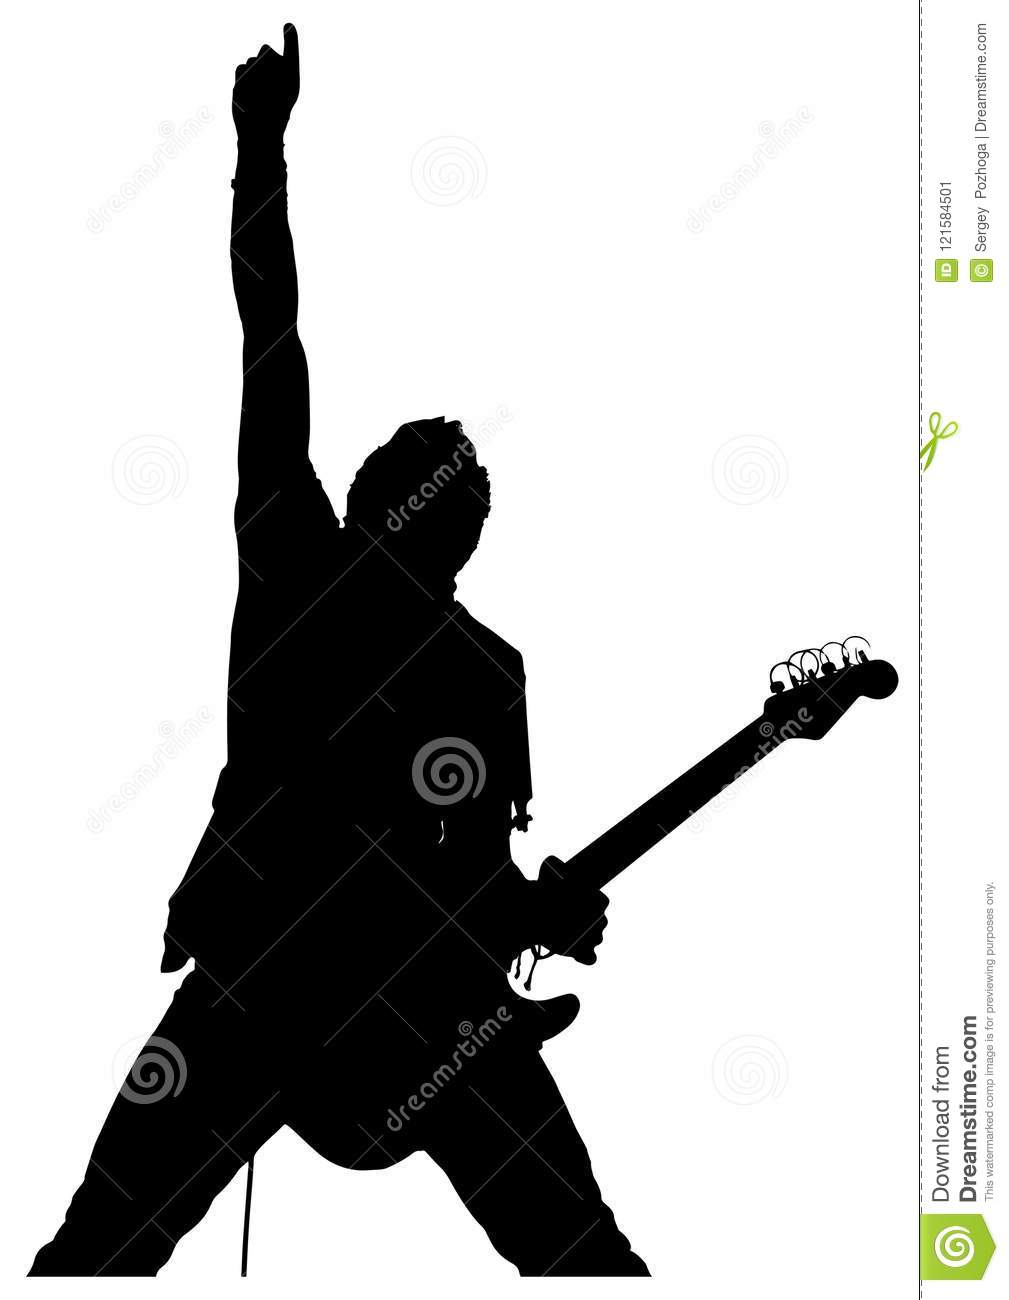 man with guitar silhouette black silhouette of a man with a guitar on a white guitar silhouette man with